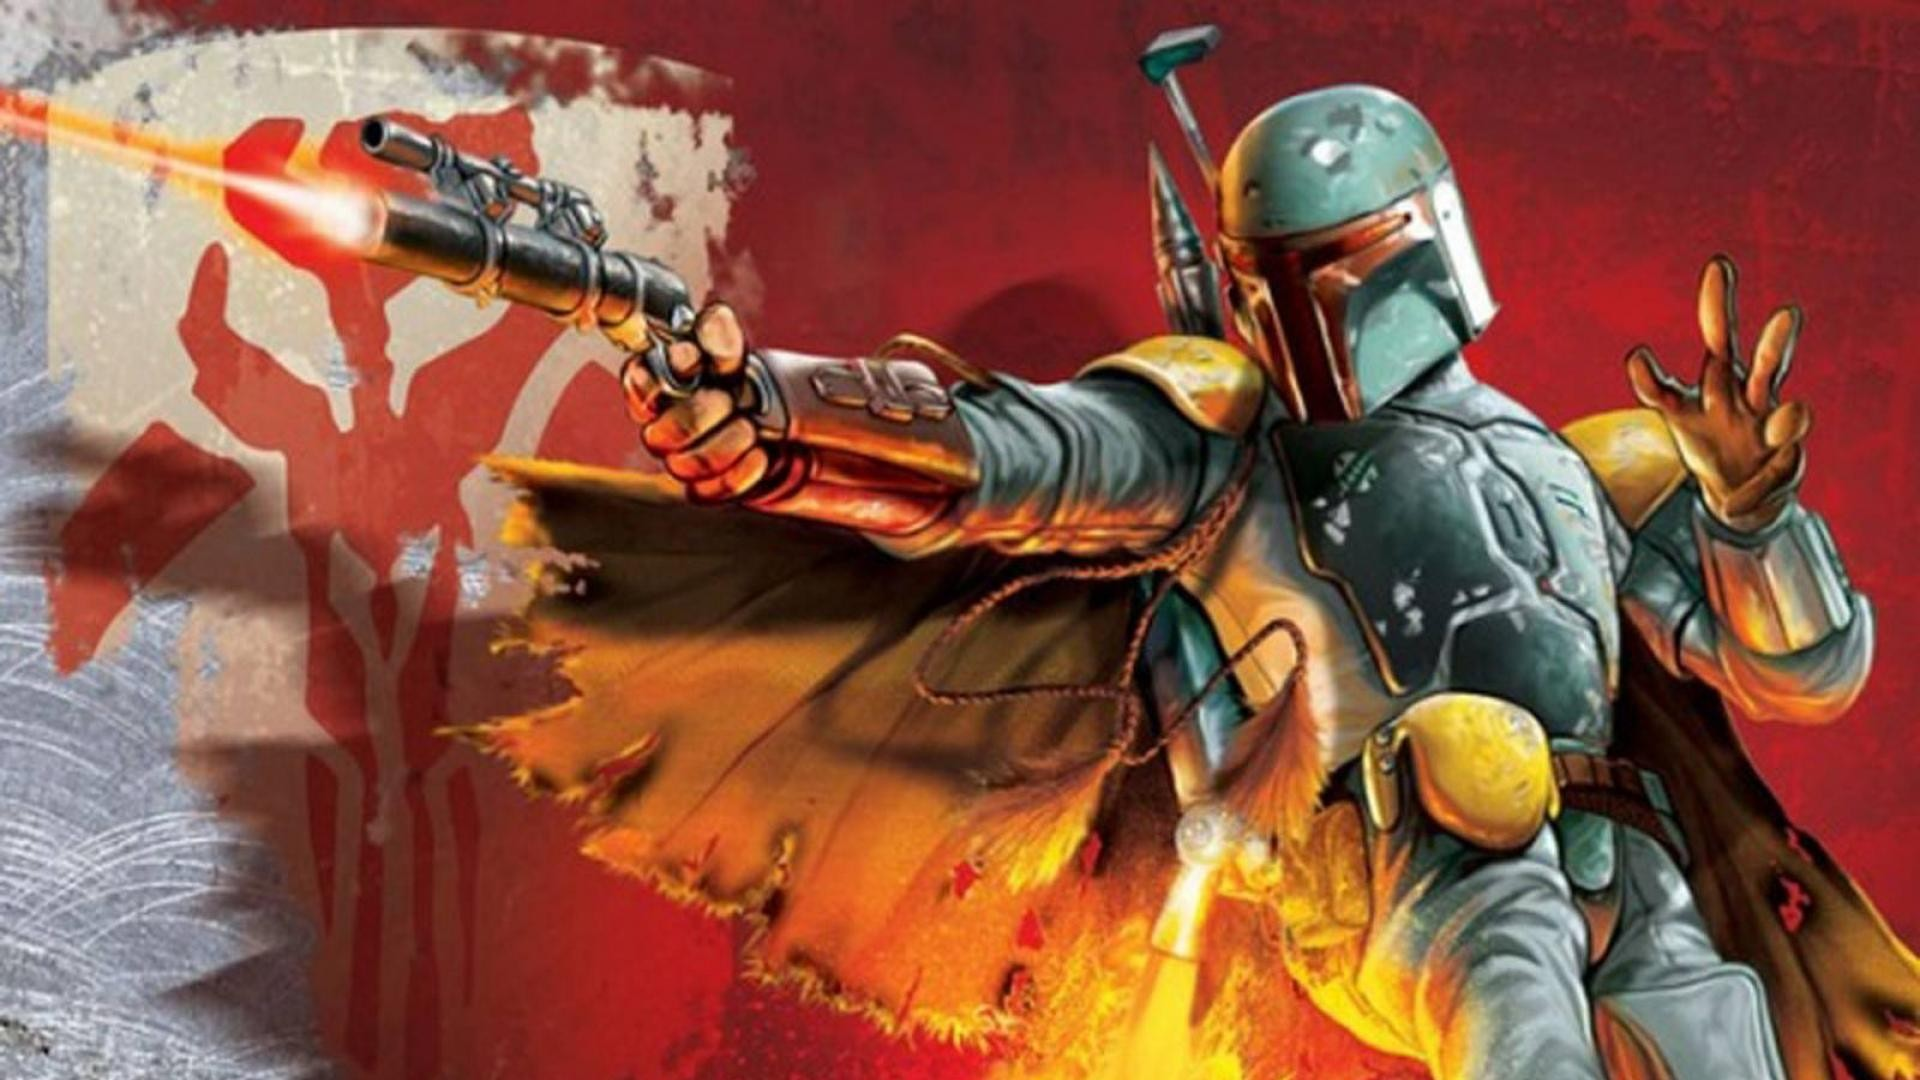 Boba Fett Wallpaper Download Free Stunning Hd Wallpapers For Desktop And Mobile Devices In Any Resolution Desktop Android Iphone Ipad 1920x1080 1366x768 360x640 1024x768 Etc Wallpapertag